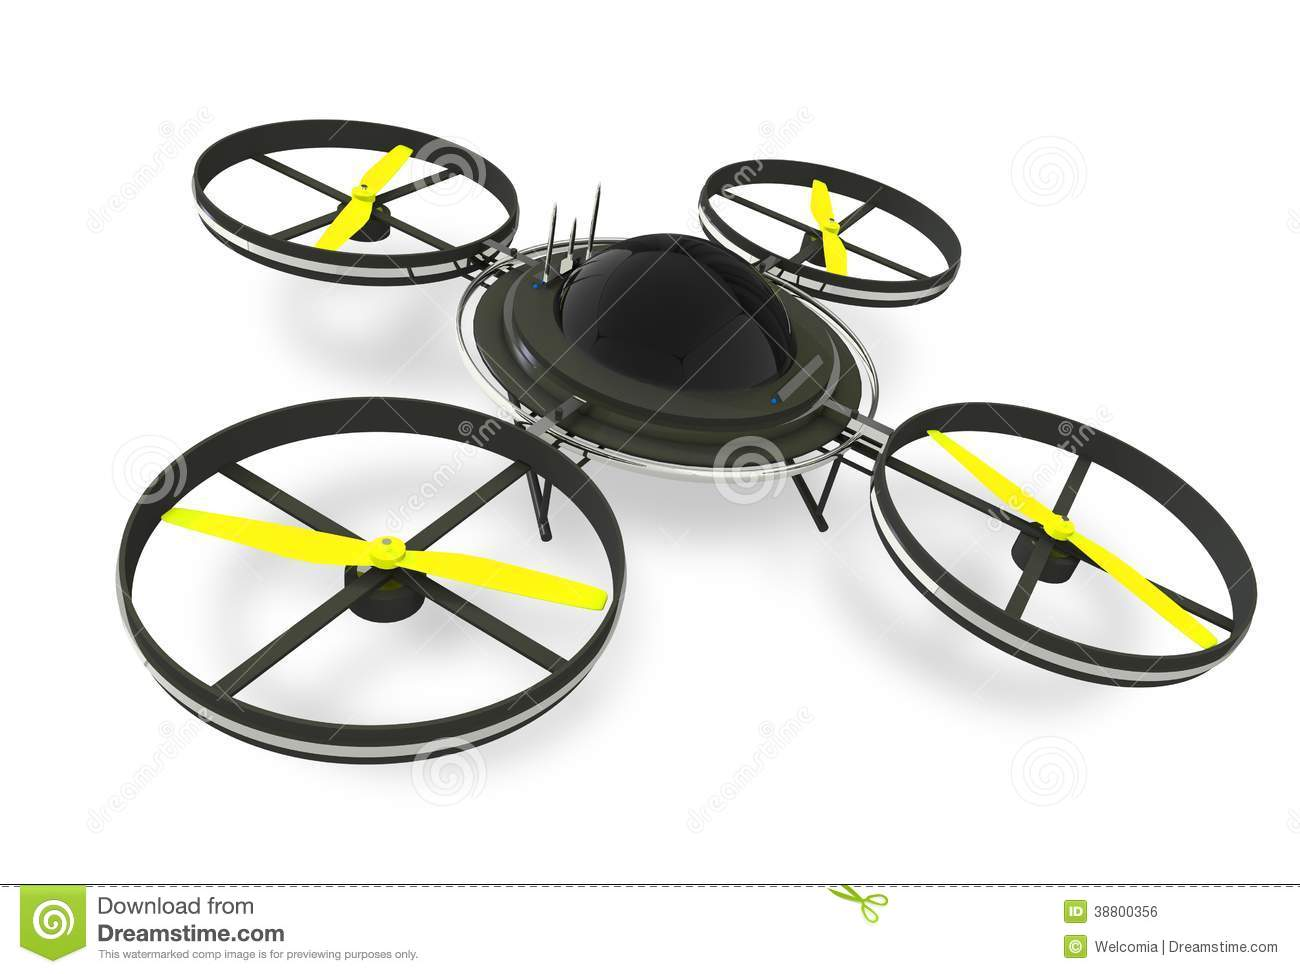 camera copter drone with Royalty Free Stock Image Quadcopter Dron Isolated White Background Remote Aircraft Technology D Render Illustration Image38800356 on Build Your Own Personal Drone as well Yd822 Sky Fighter Battle Drone Quadcopter Set moreover Sa Police To Use Unmanned Drones To Spy On Criminals in addition Camera drone picture quadcopter record spy video icon additionally Dji Phantom 2 Vision Quadcopter.